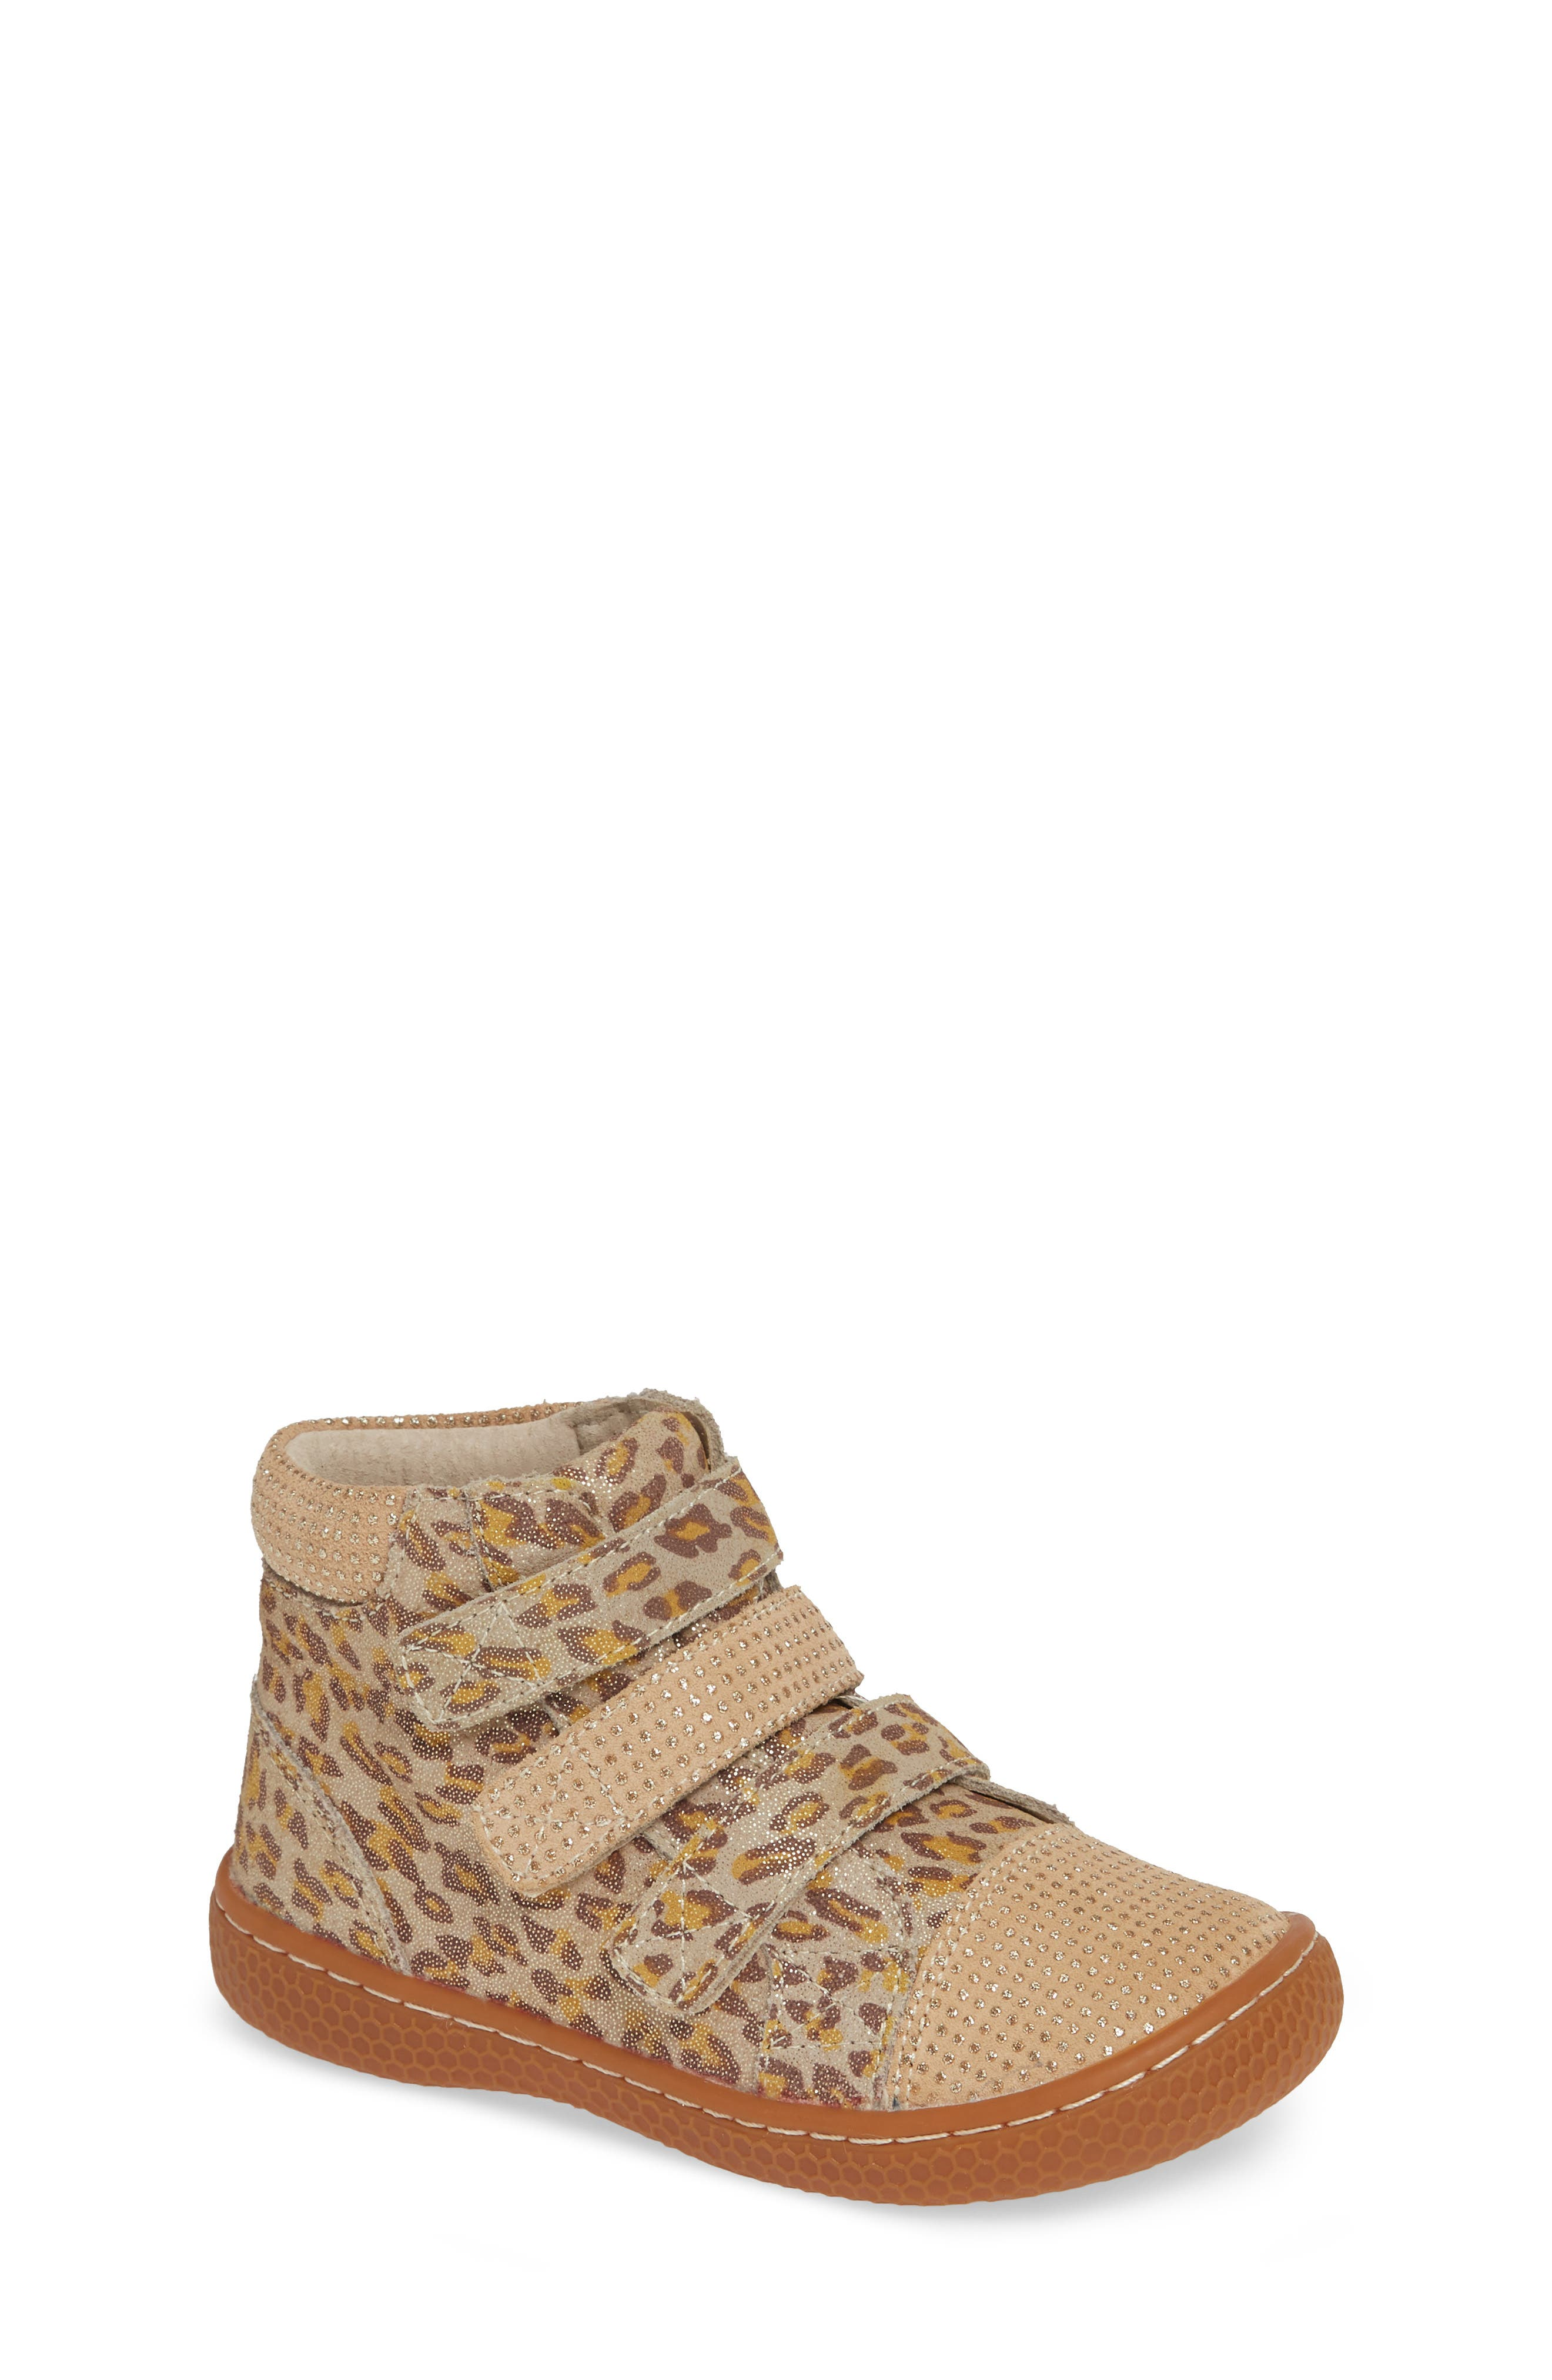 'Jamie' High Top Sneaker,                             Main thumbnail 1, color,                             LEOPARD SHIMMER